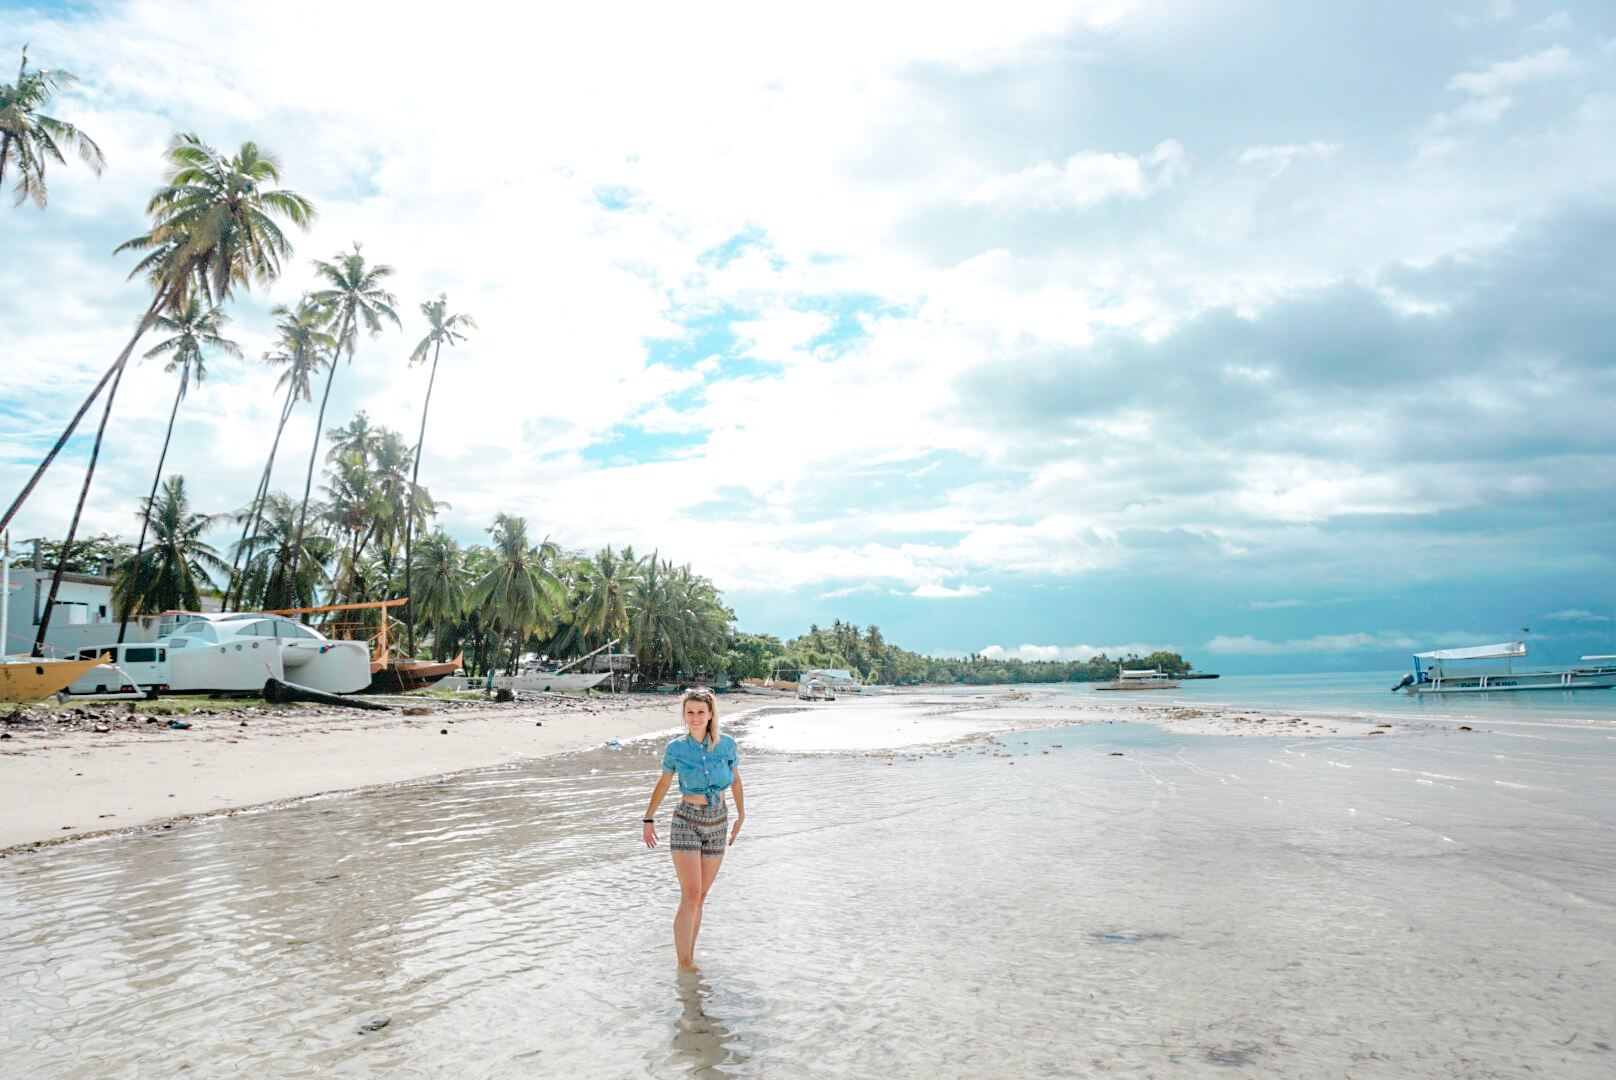 Plage cote ouest Bohol Panglao philippines